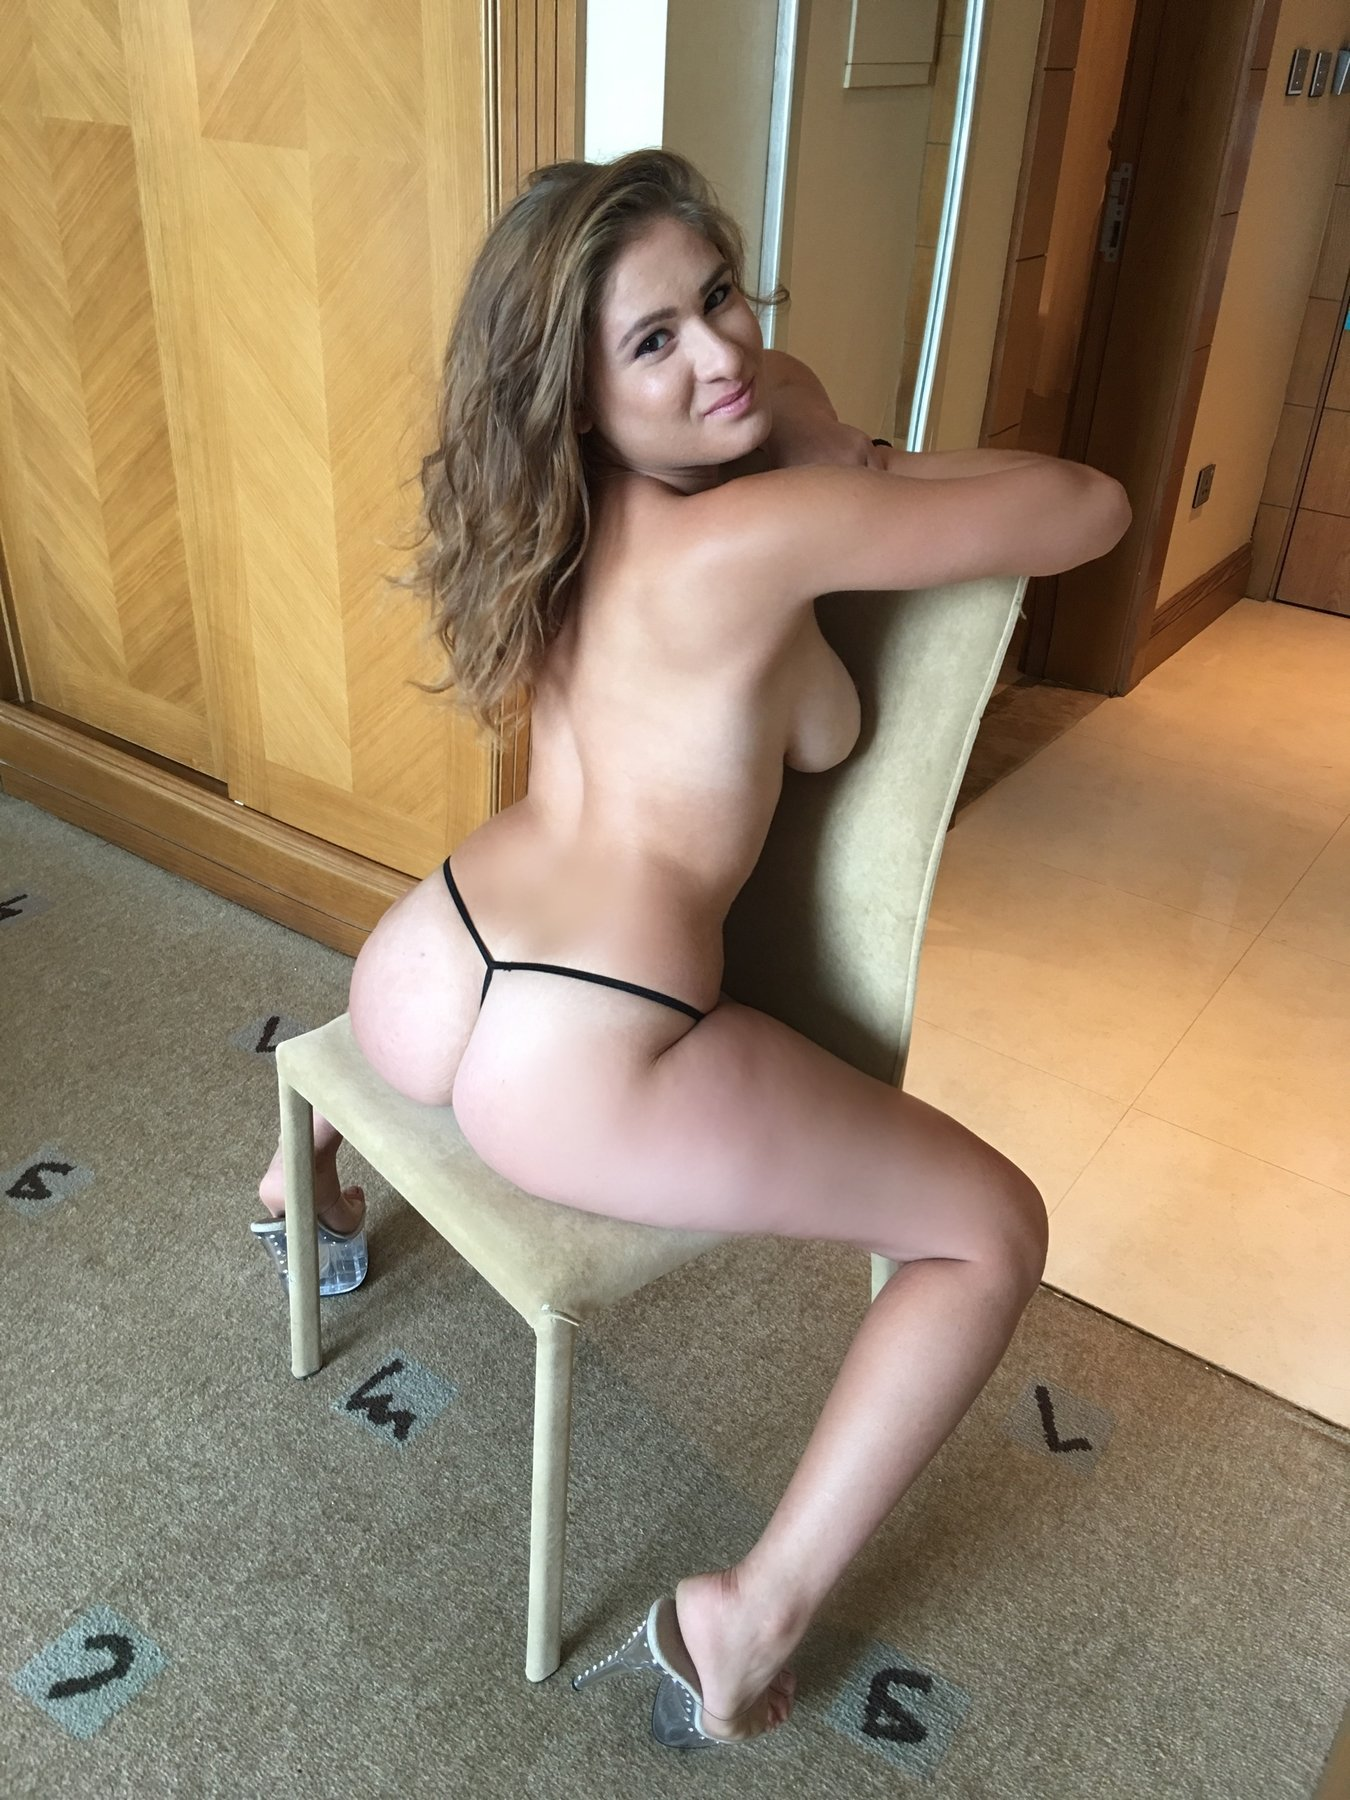 real escort pictures homo escort service hungary